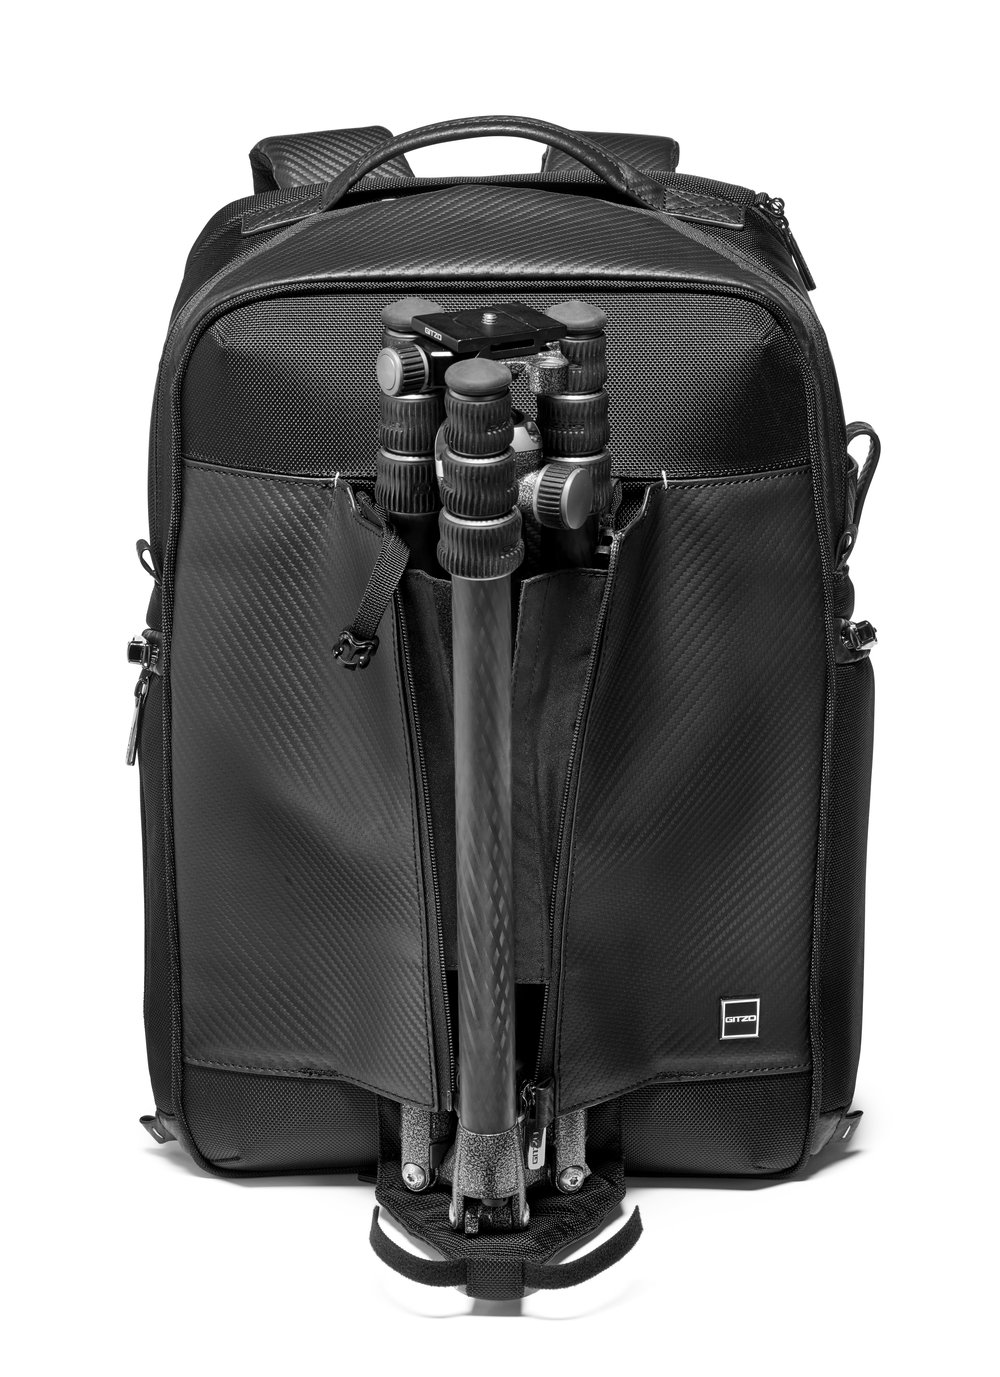 HR-GITZO_camera_bag_GCB100BP_tripod_B_02.jpg